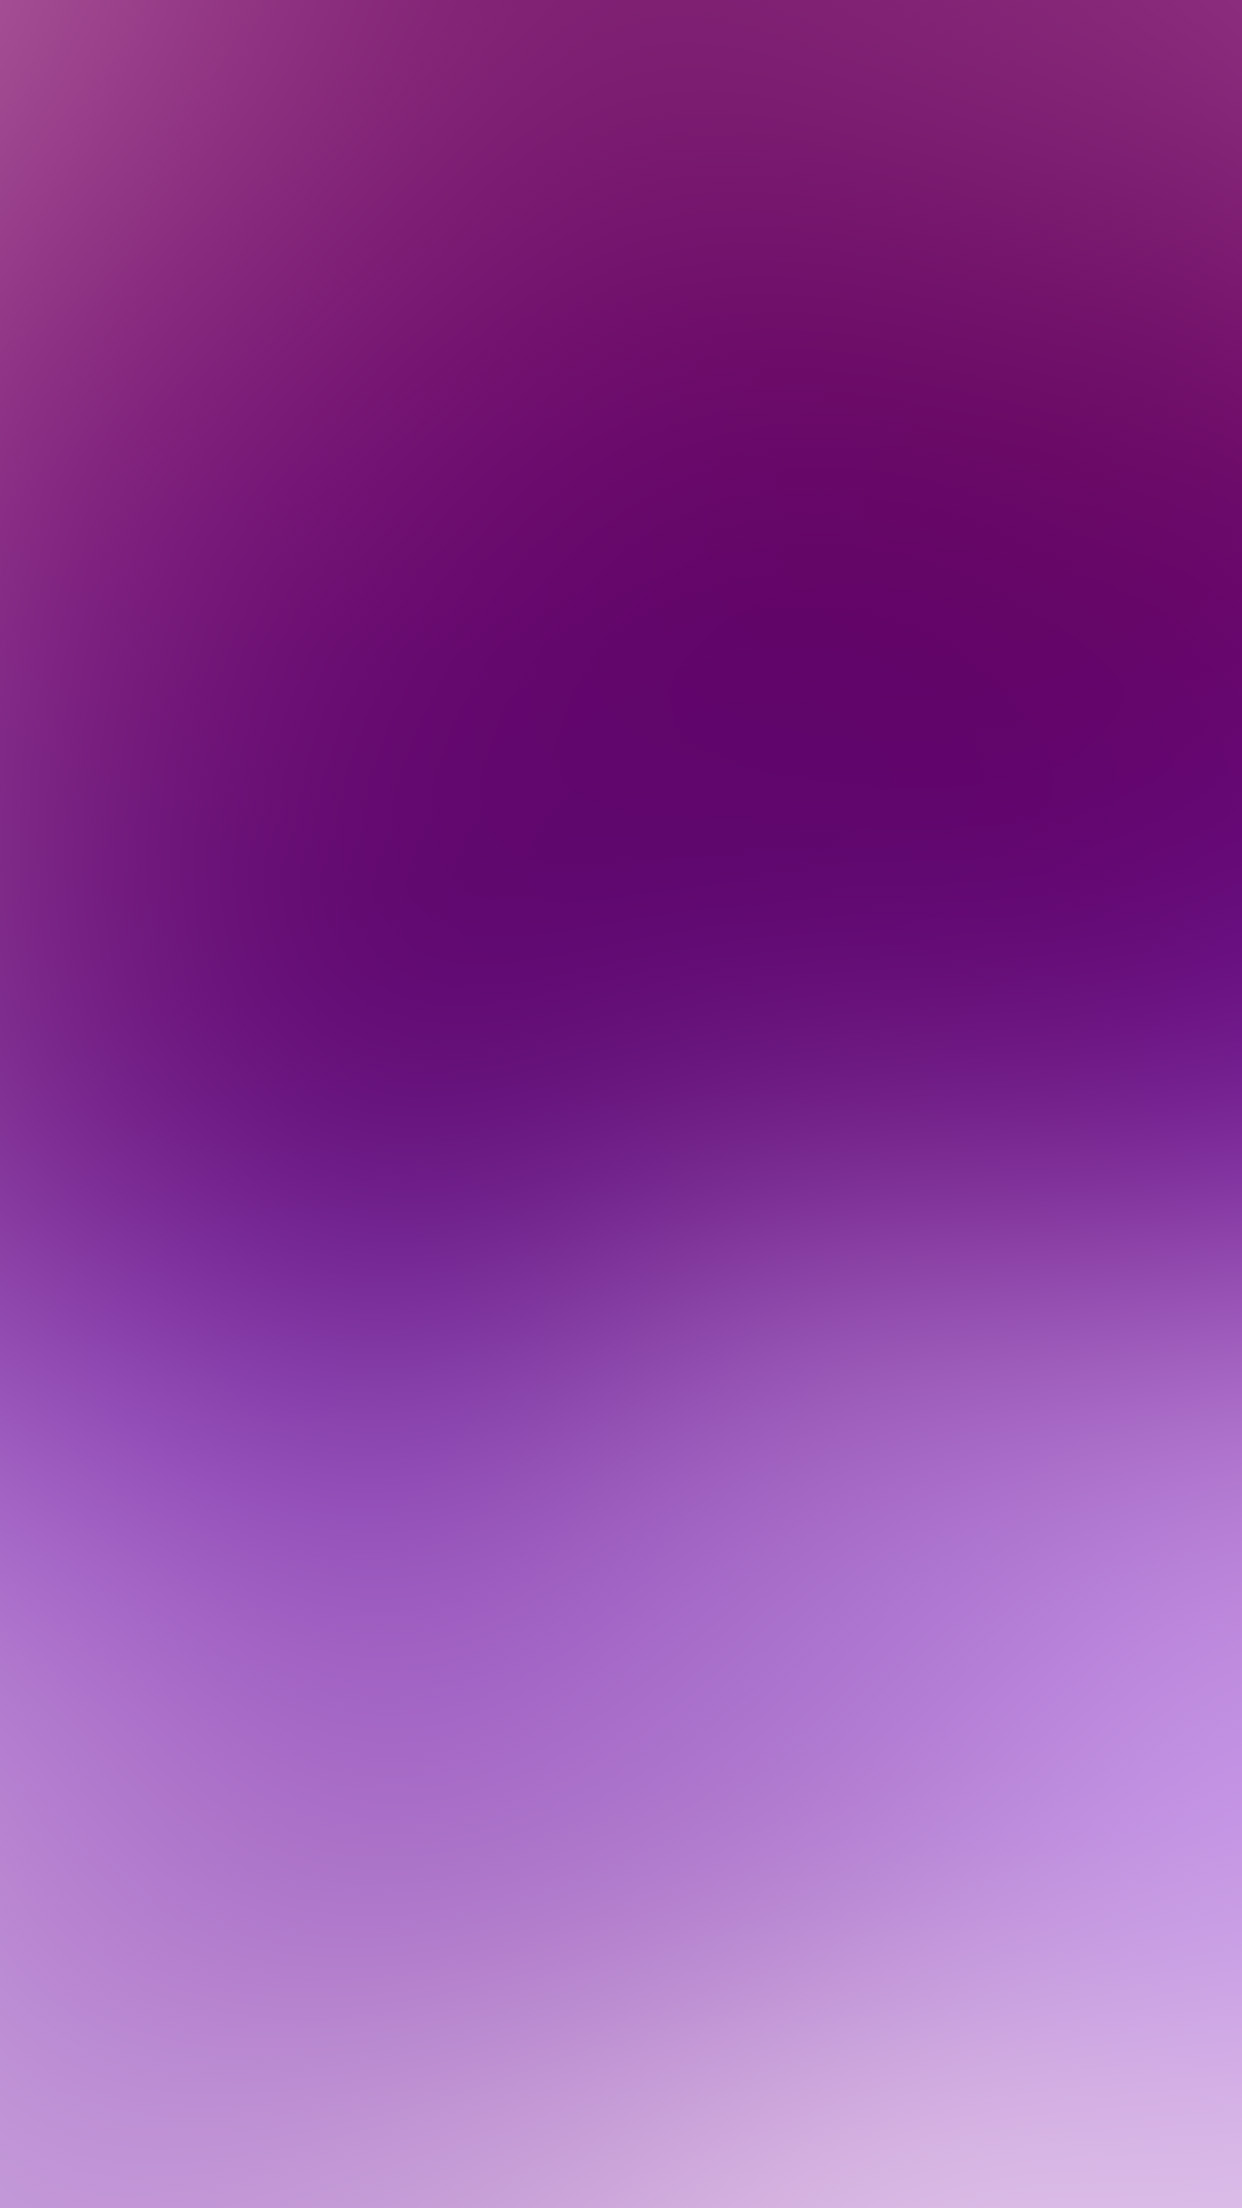 Wallpaper Cute For Iphone 6 Plus Sf29 Purple Rain Gradation Blur Papers Co